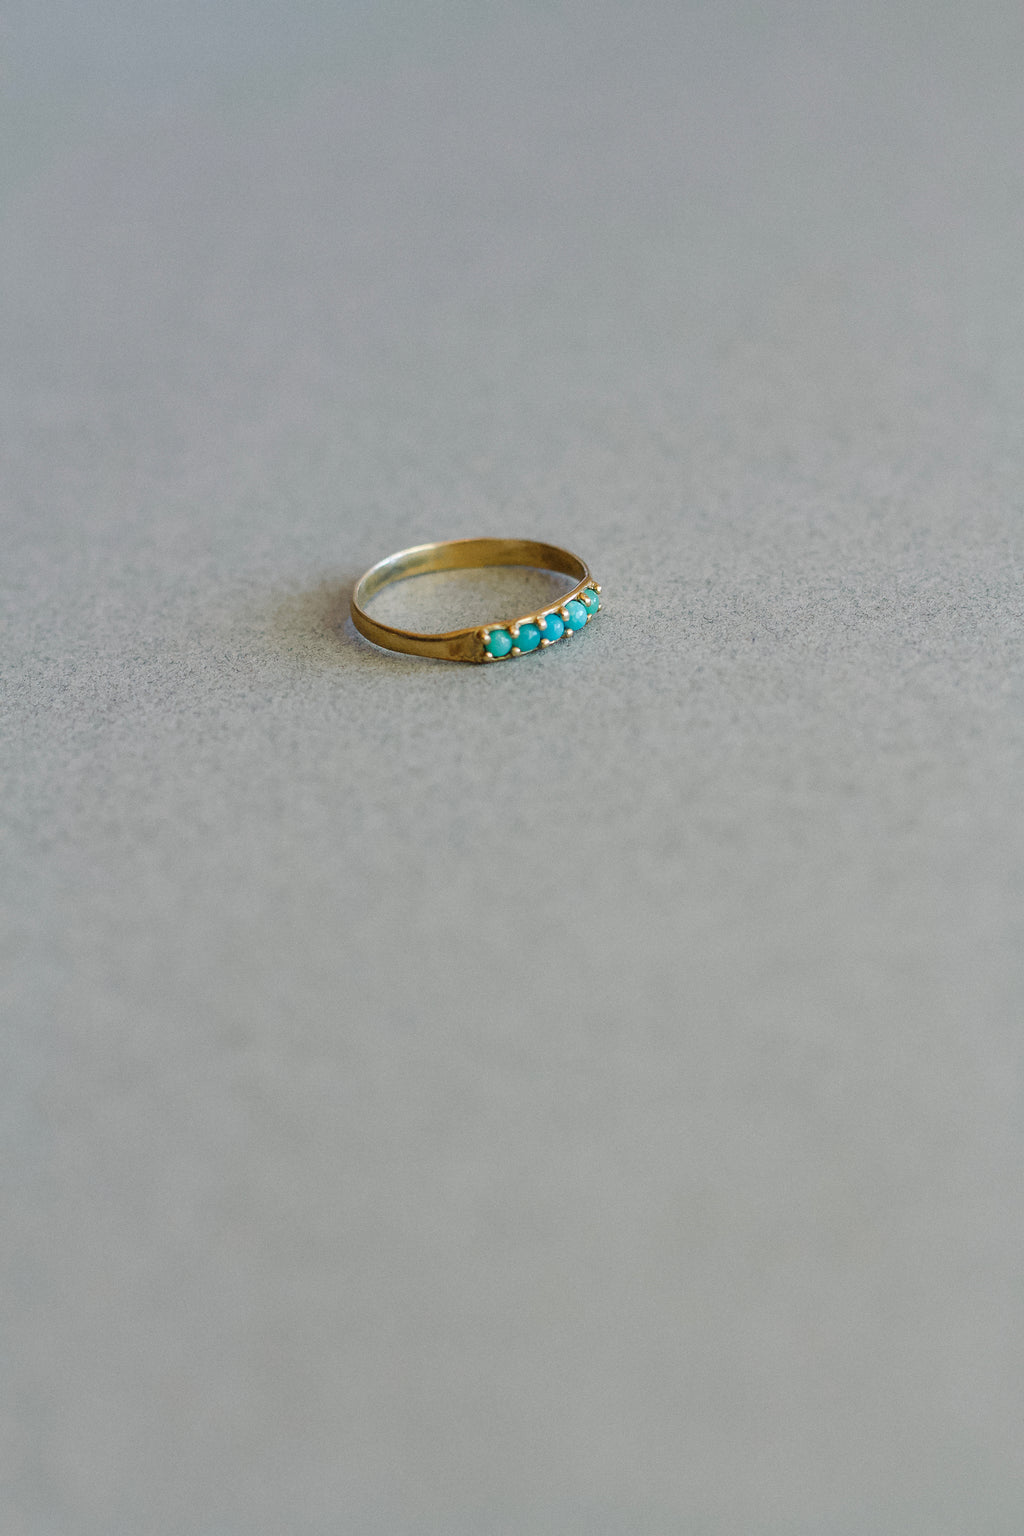 Five 2-millimeter turquoise stones are set in this simple and delicate lost wax cast ring made by Mimosa Handcrafted.  The perfect gift for the bold or minimalist in style! Handmade in south Louisiana. Makers Workshop